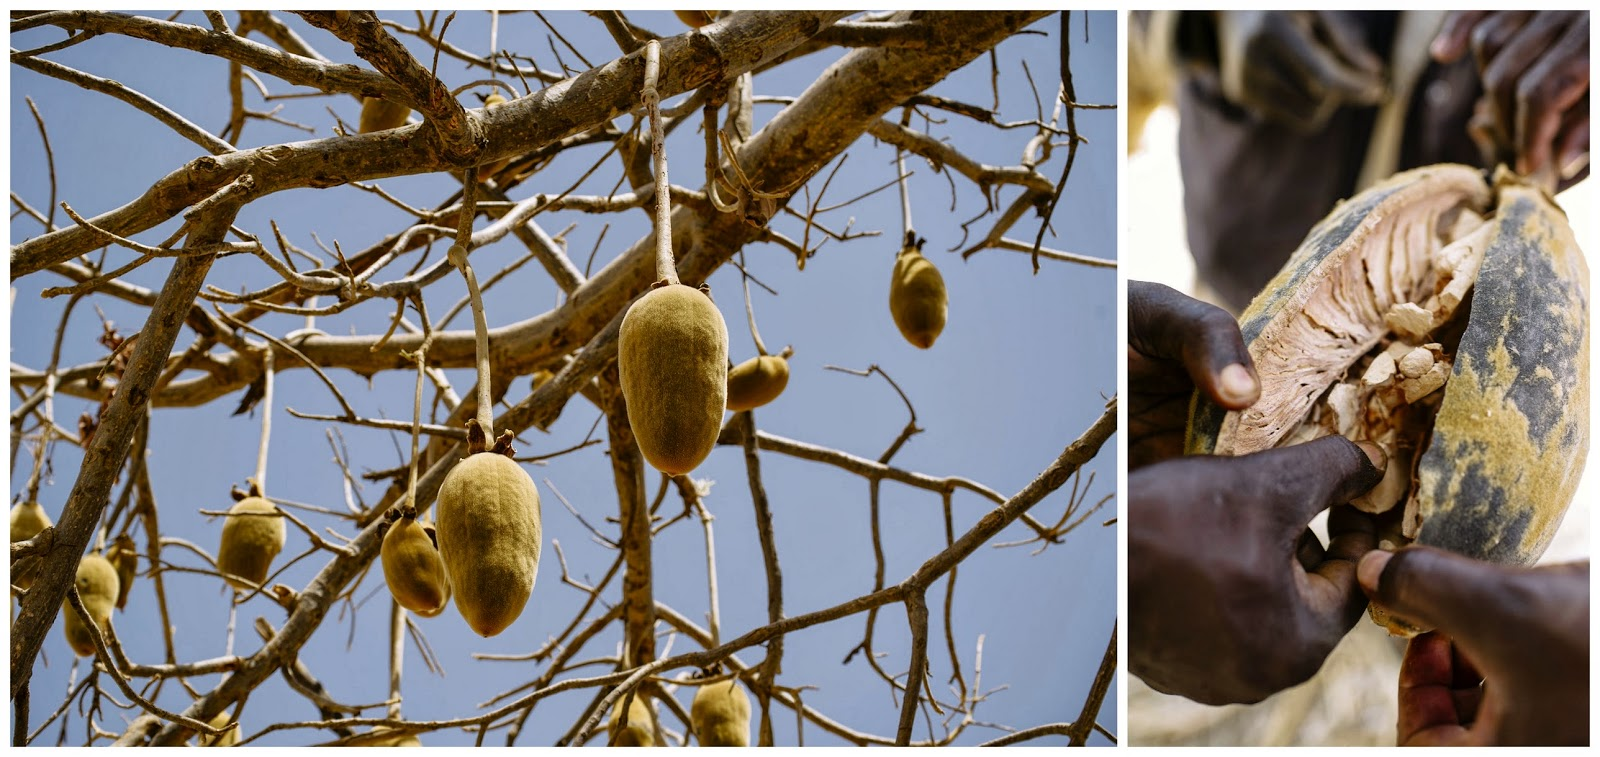 Baobab fruit seen hanging from the tree and opened.